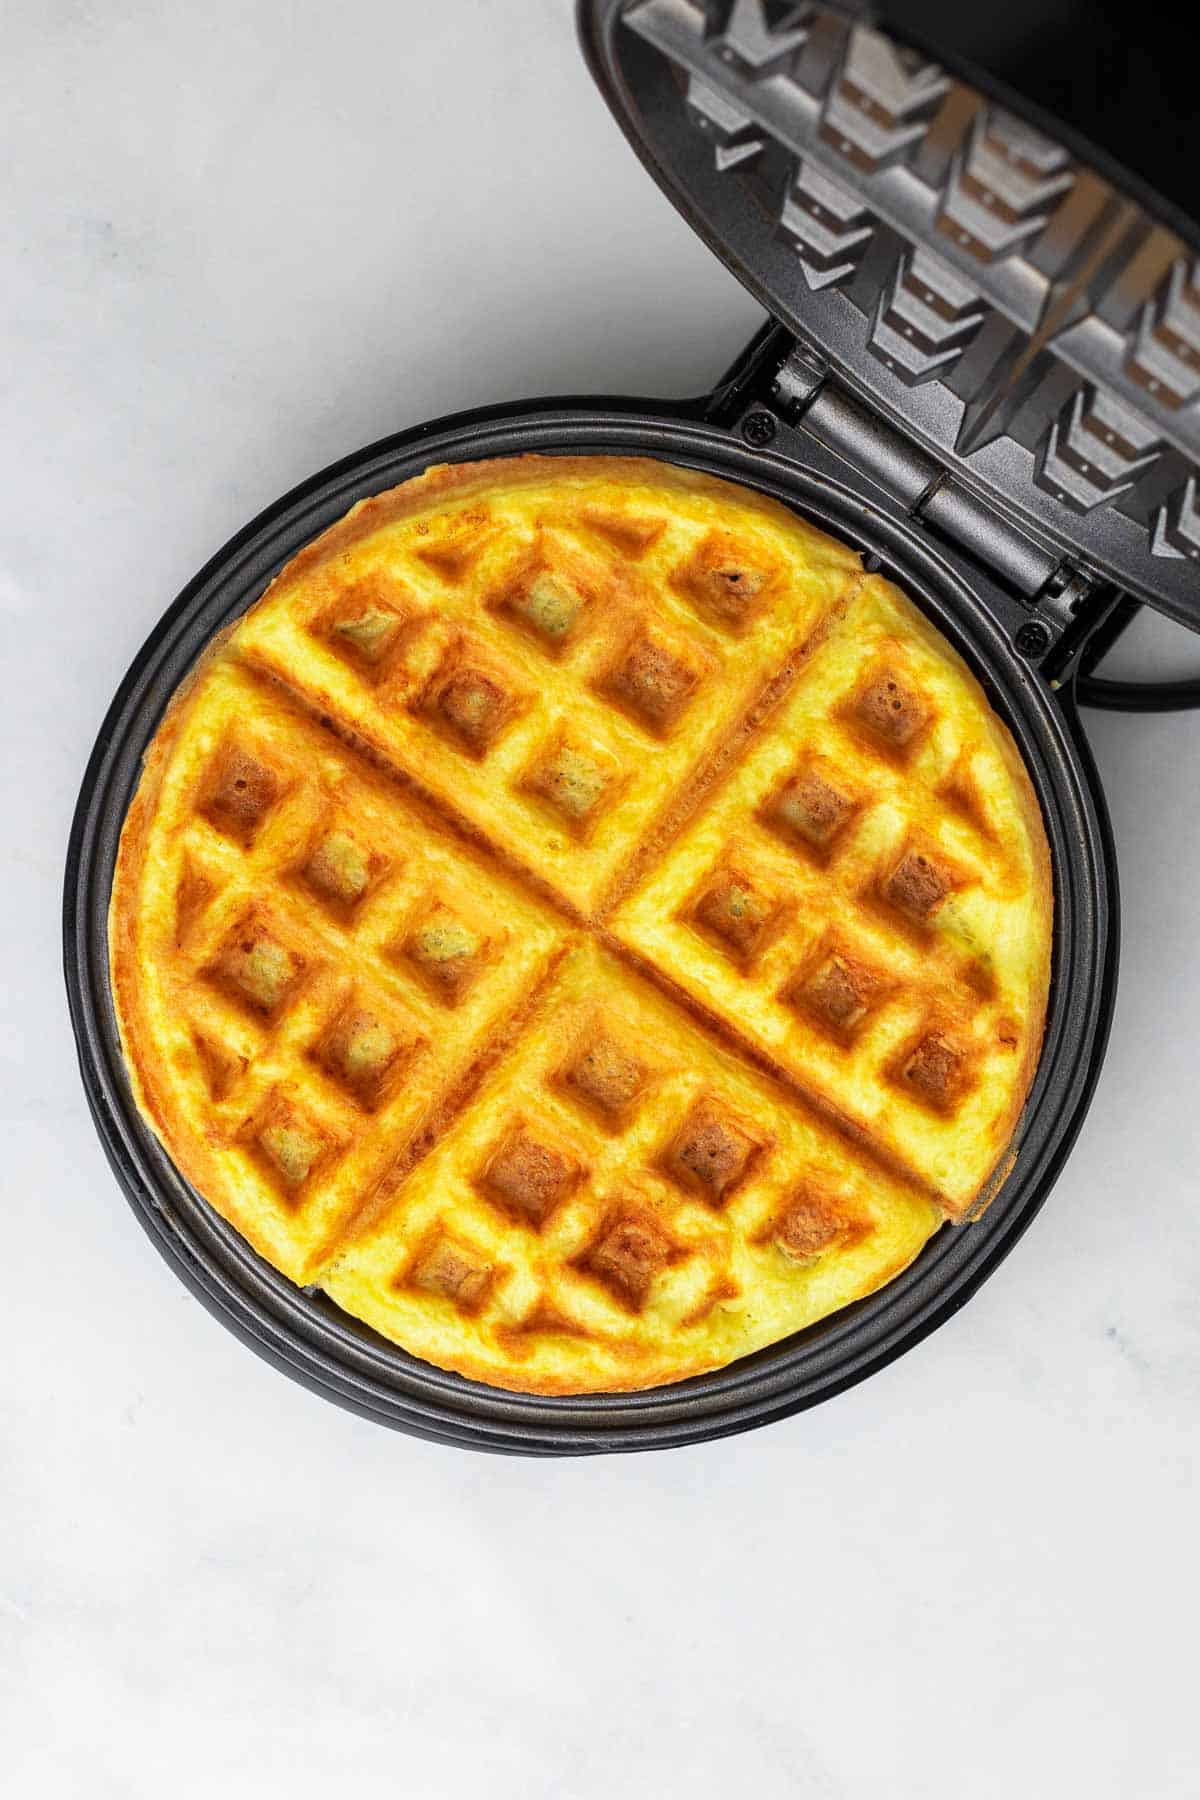 Finished chaffle in the waffle maker, as seen from above